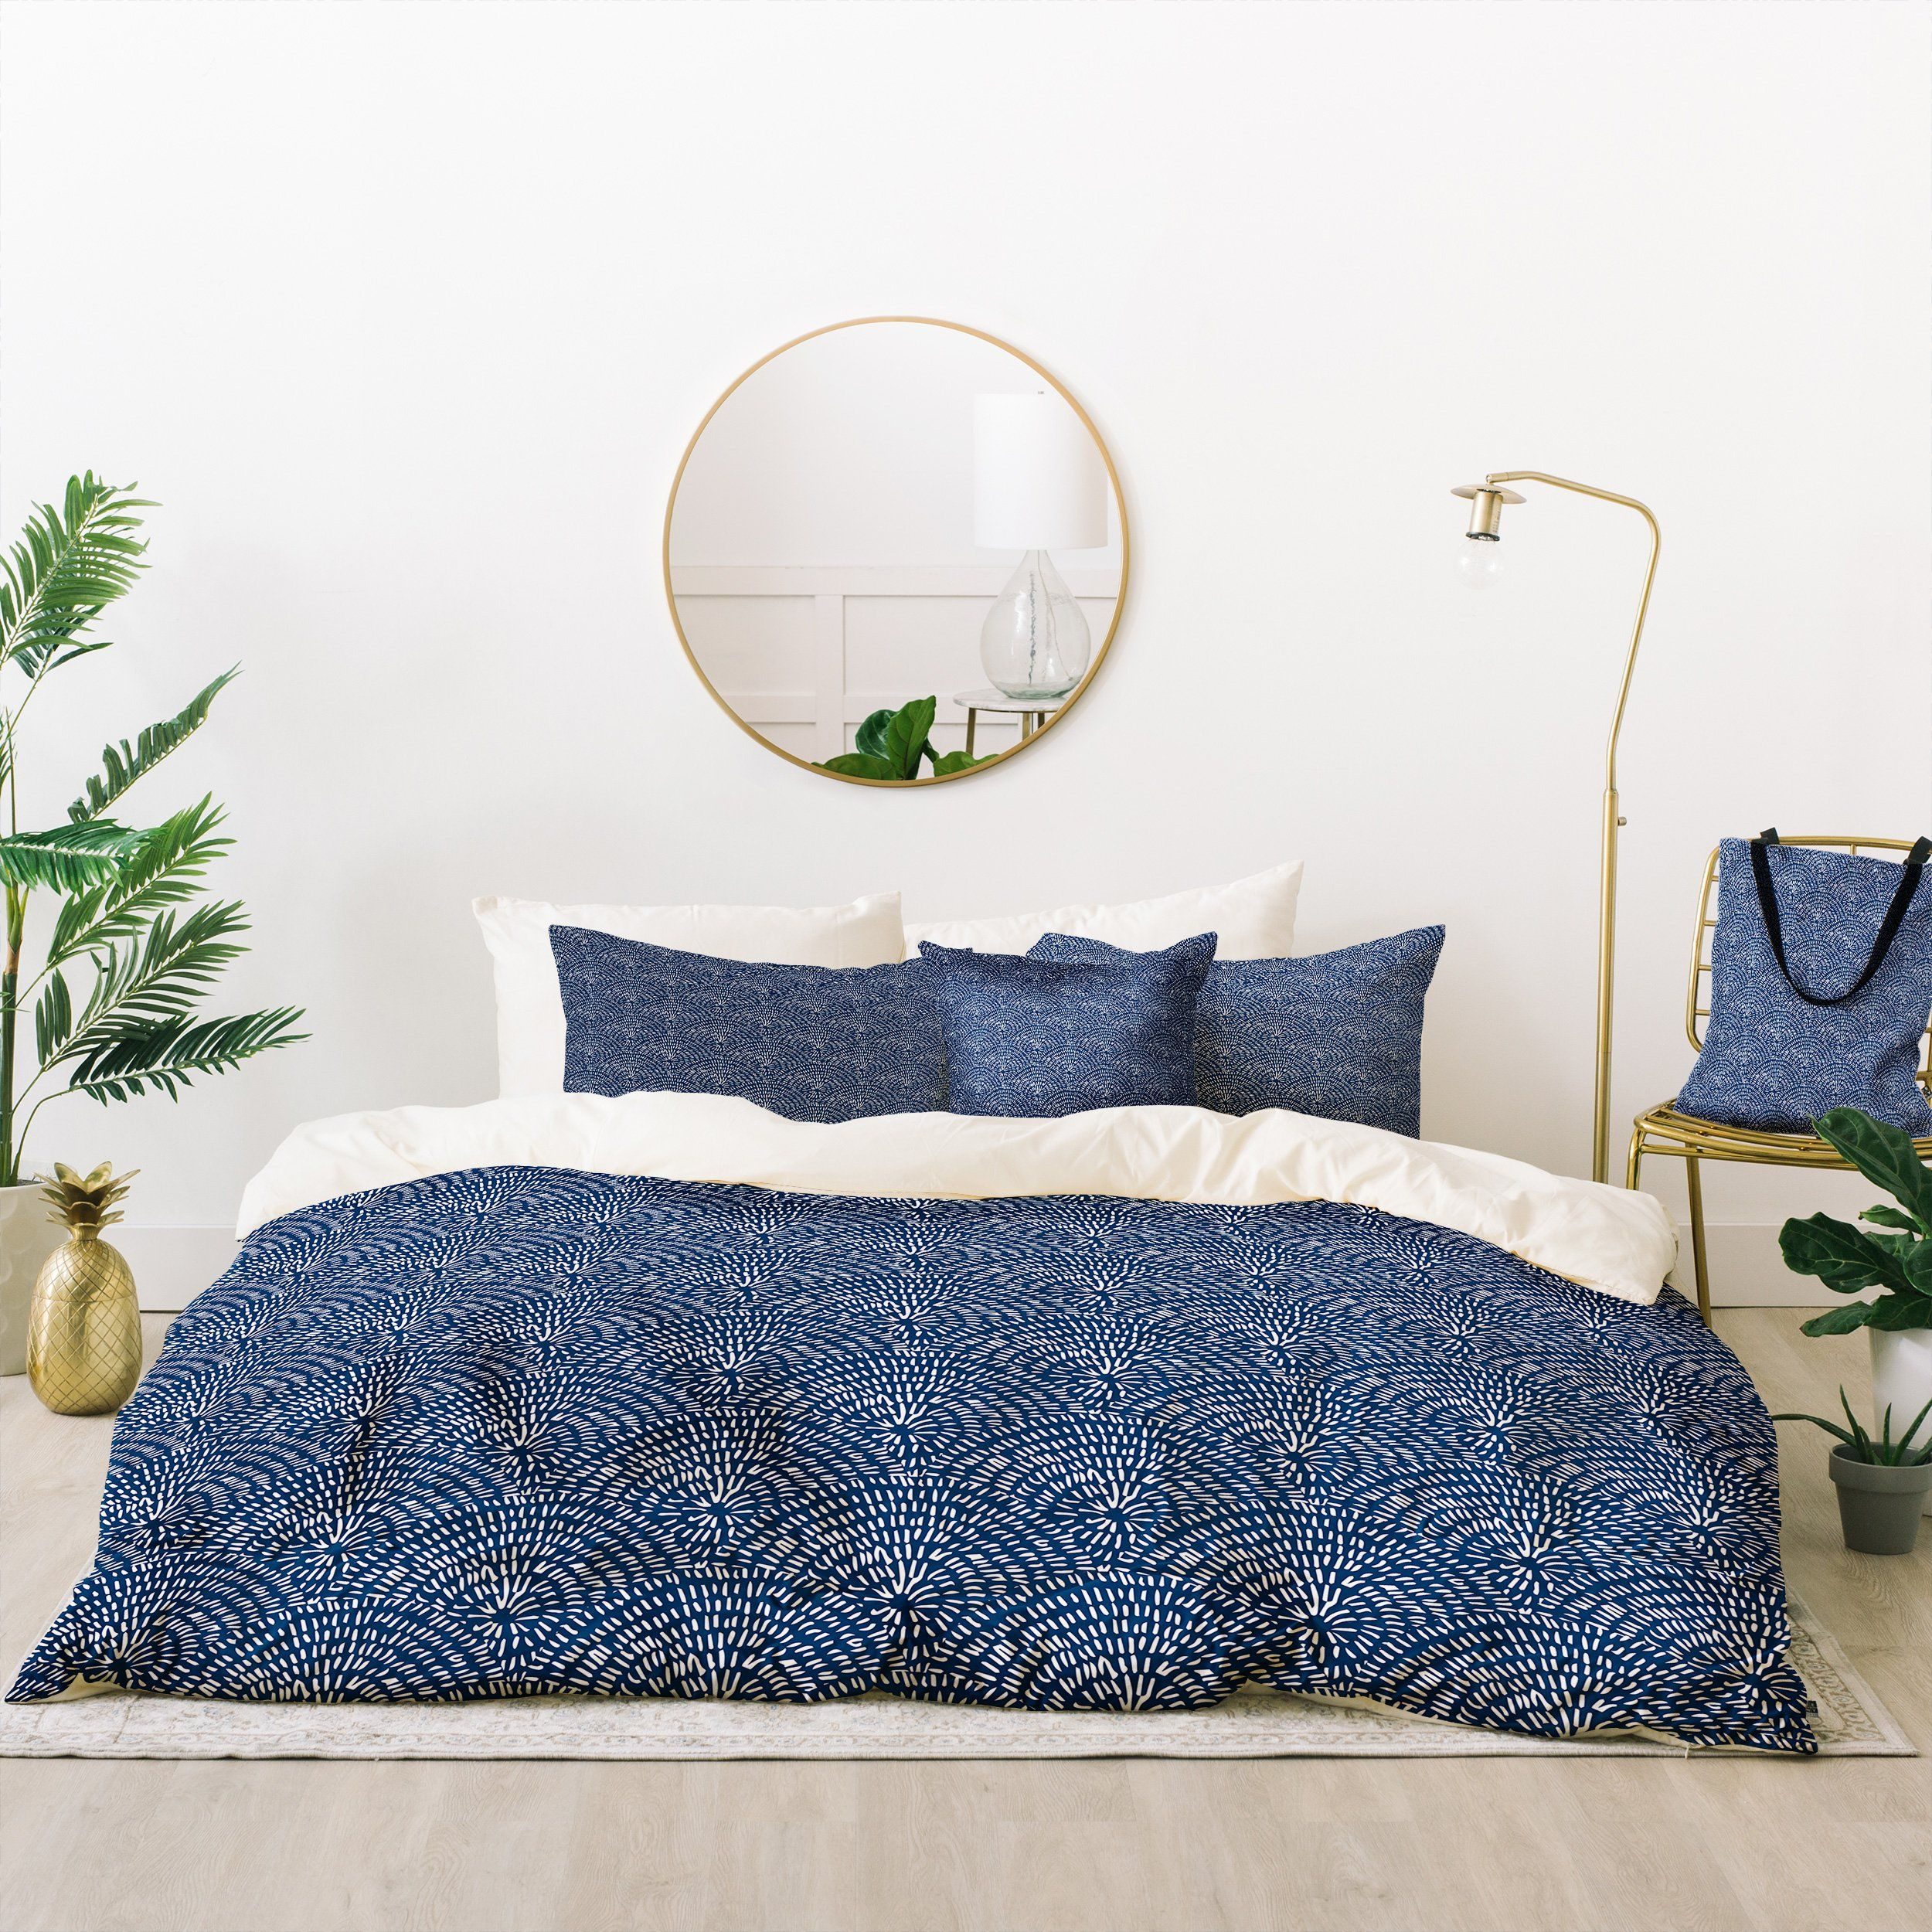 Camilla Foss Circles in Blue III Bed